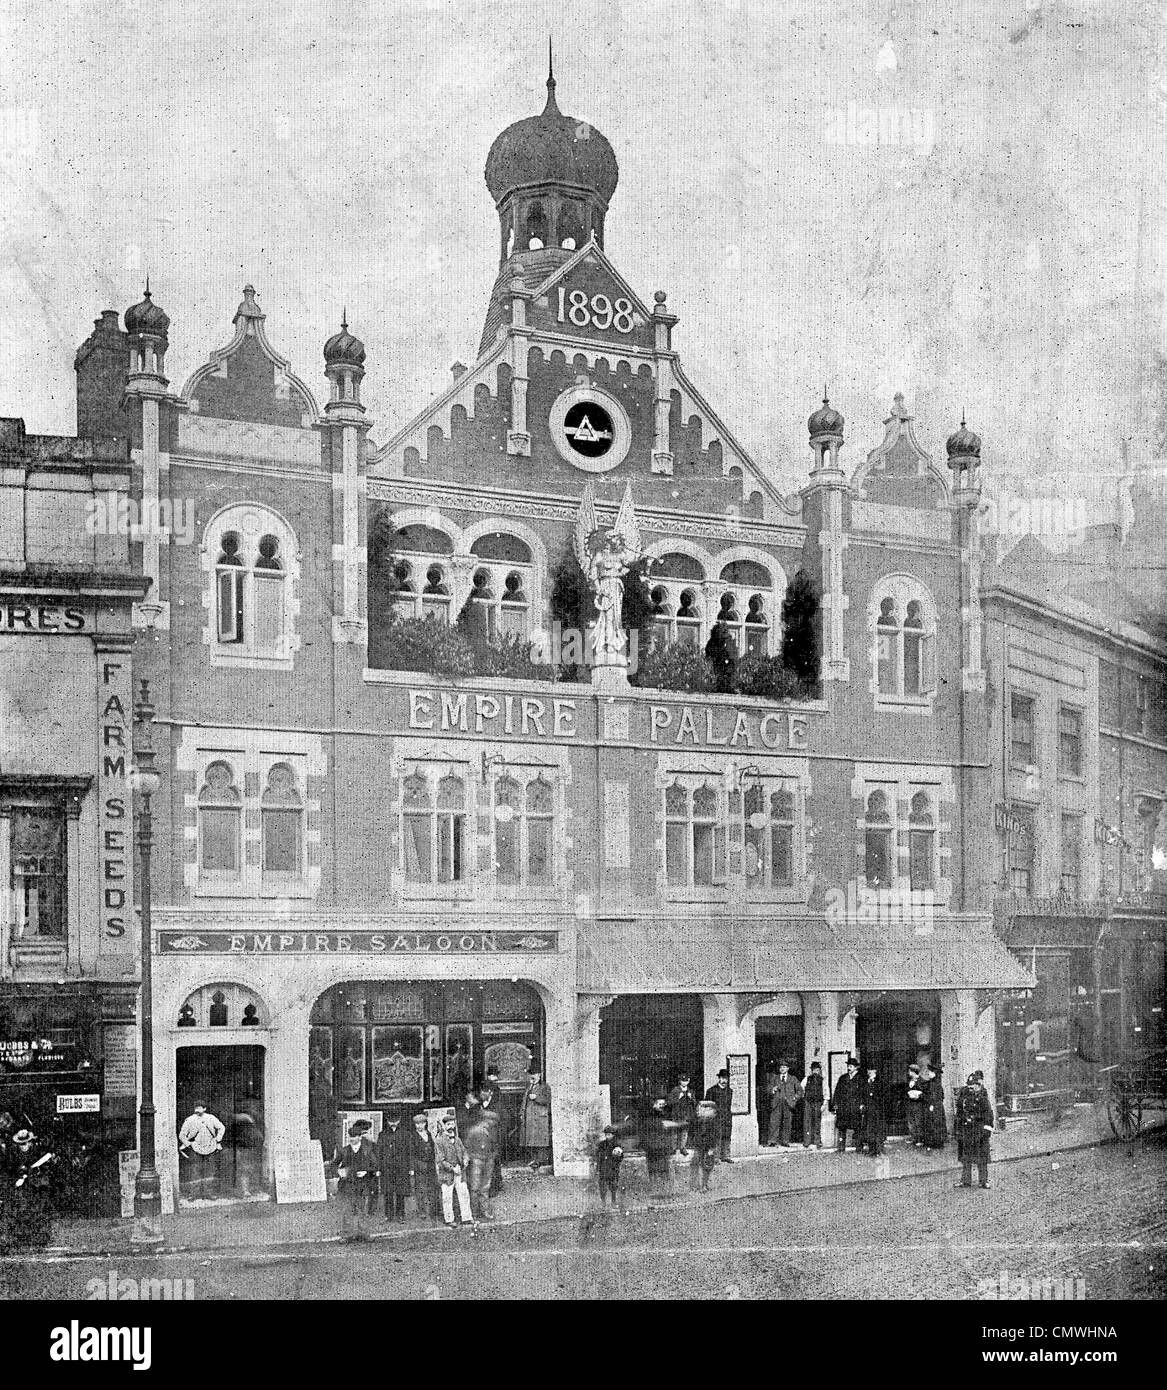 Empire Palace Theatre, Wolverhampton, circa 1910. The image shows the Queen Square frontage of the building, with - Stock Image